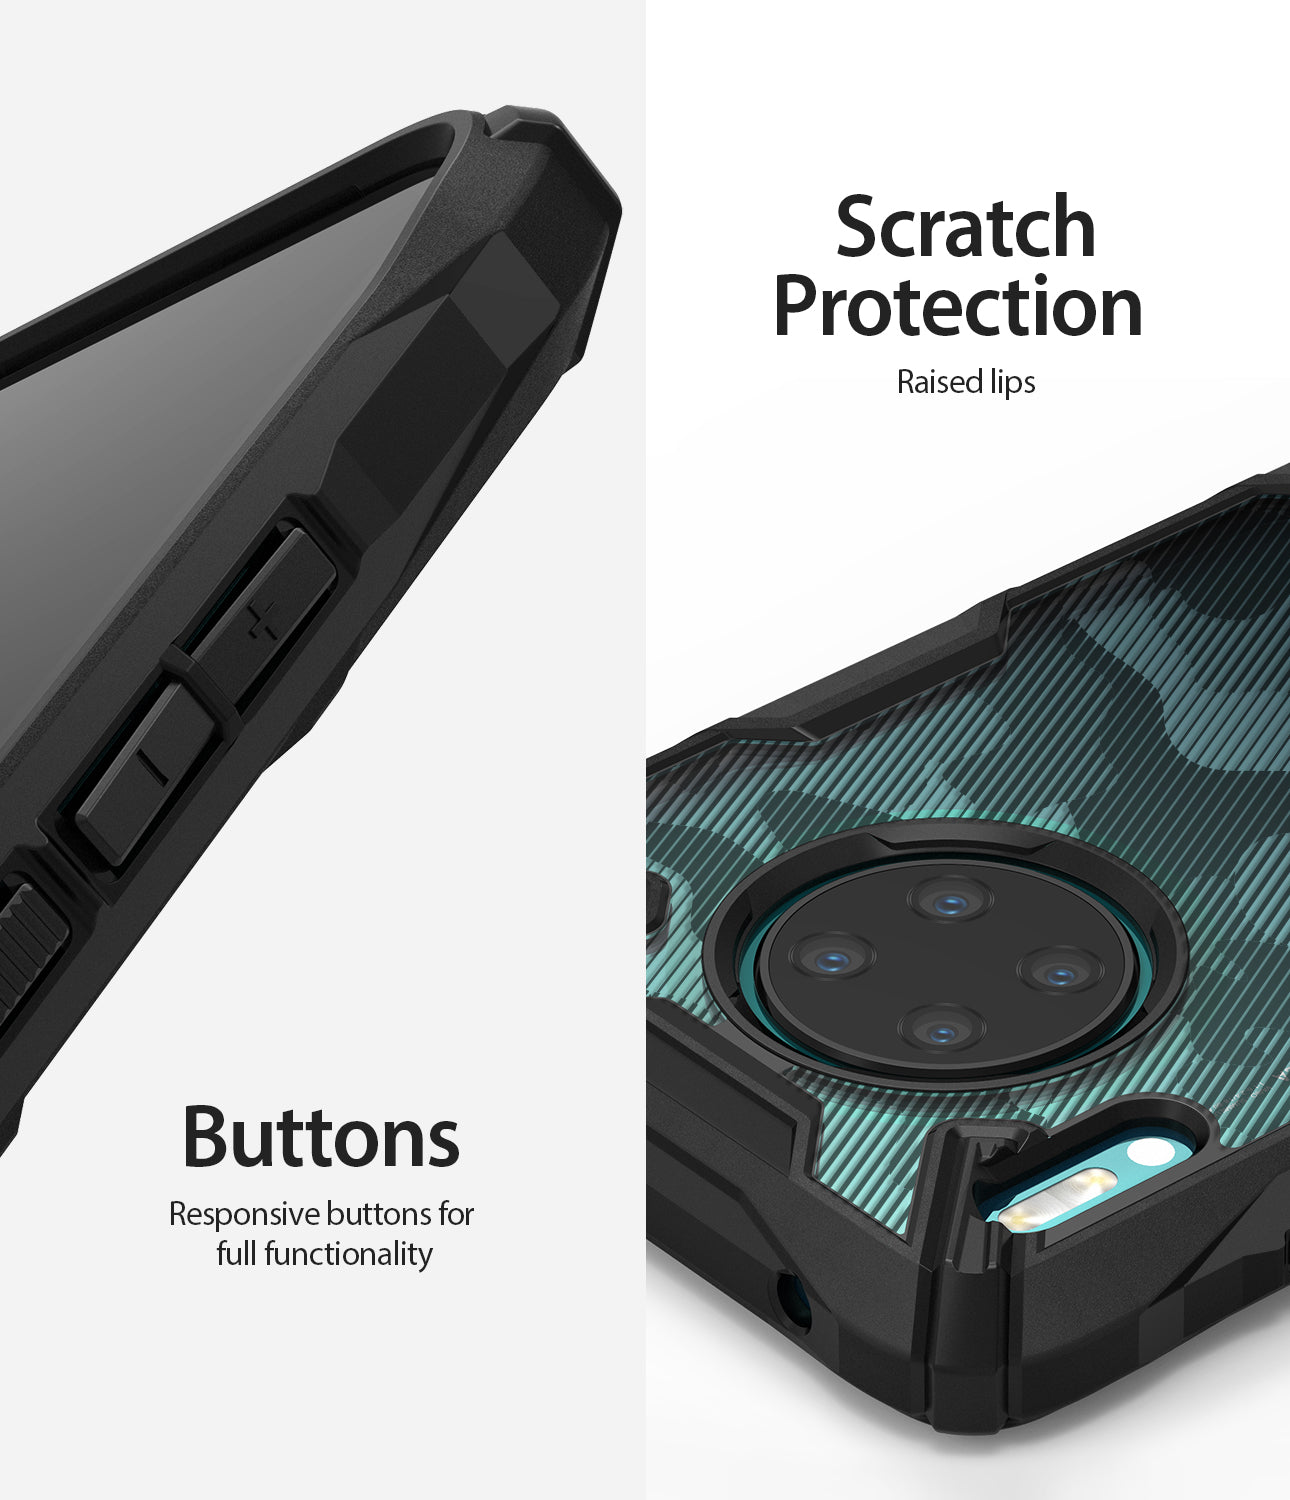 scratch resistant with responsive buttons